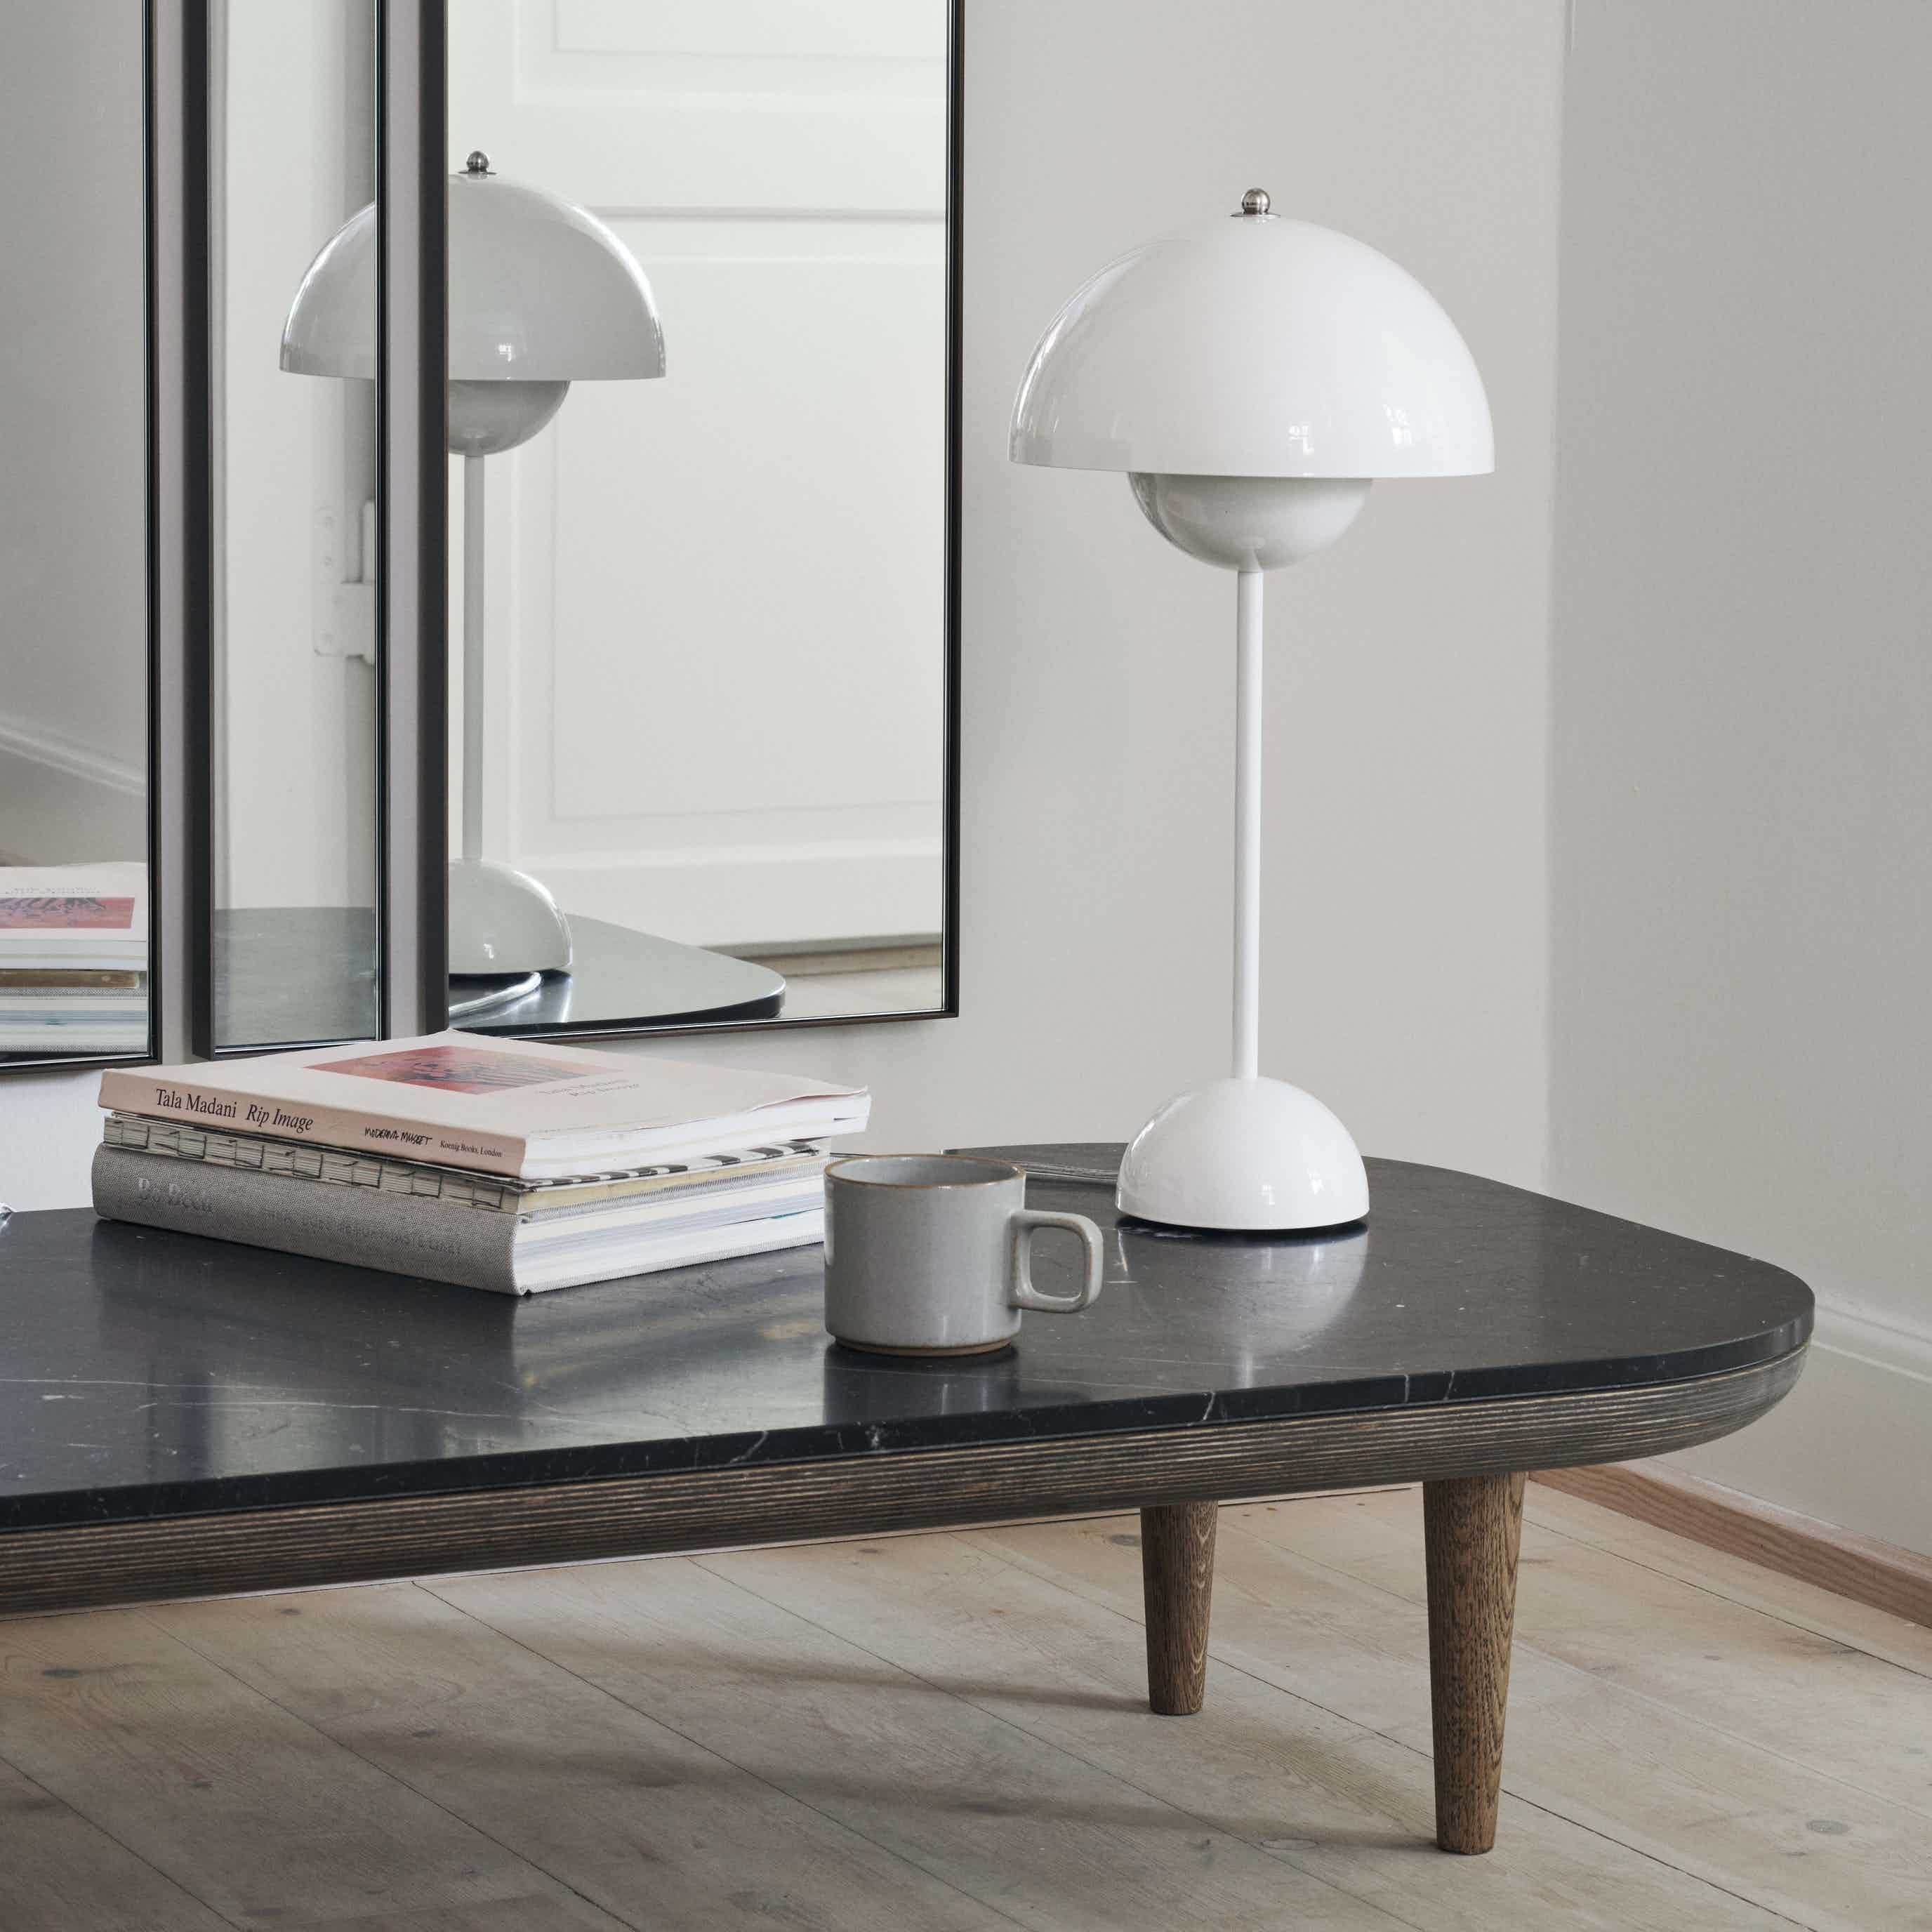 Flowerpot Table Lamp Vp3 By Tradition Table Lamp White Table Lamp Lamp